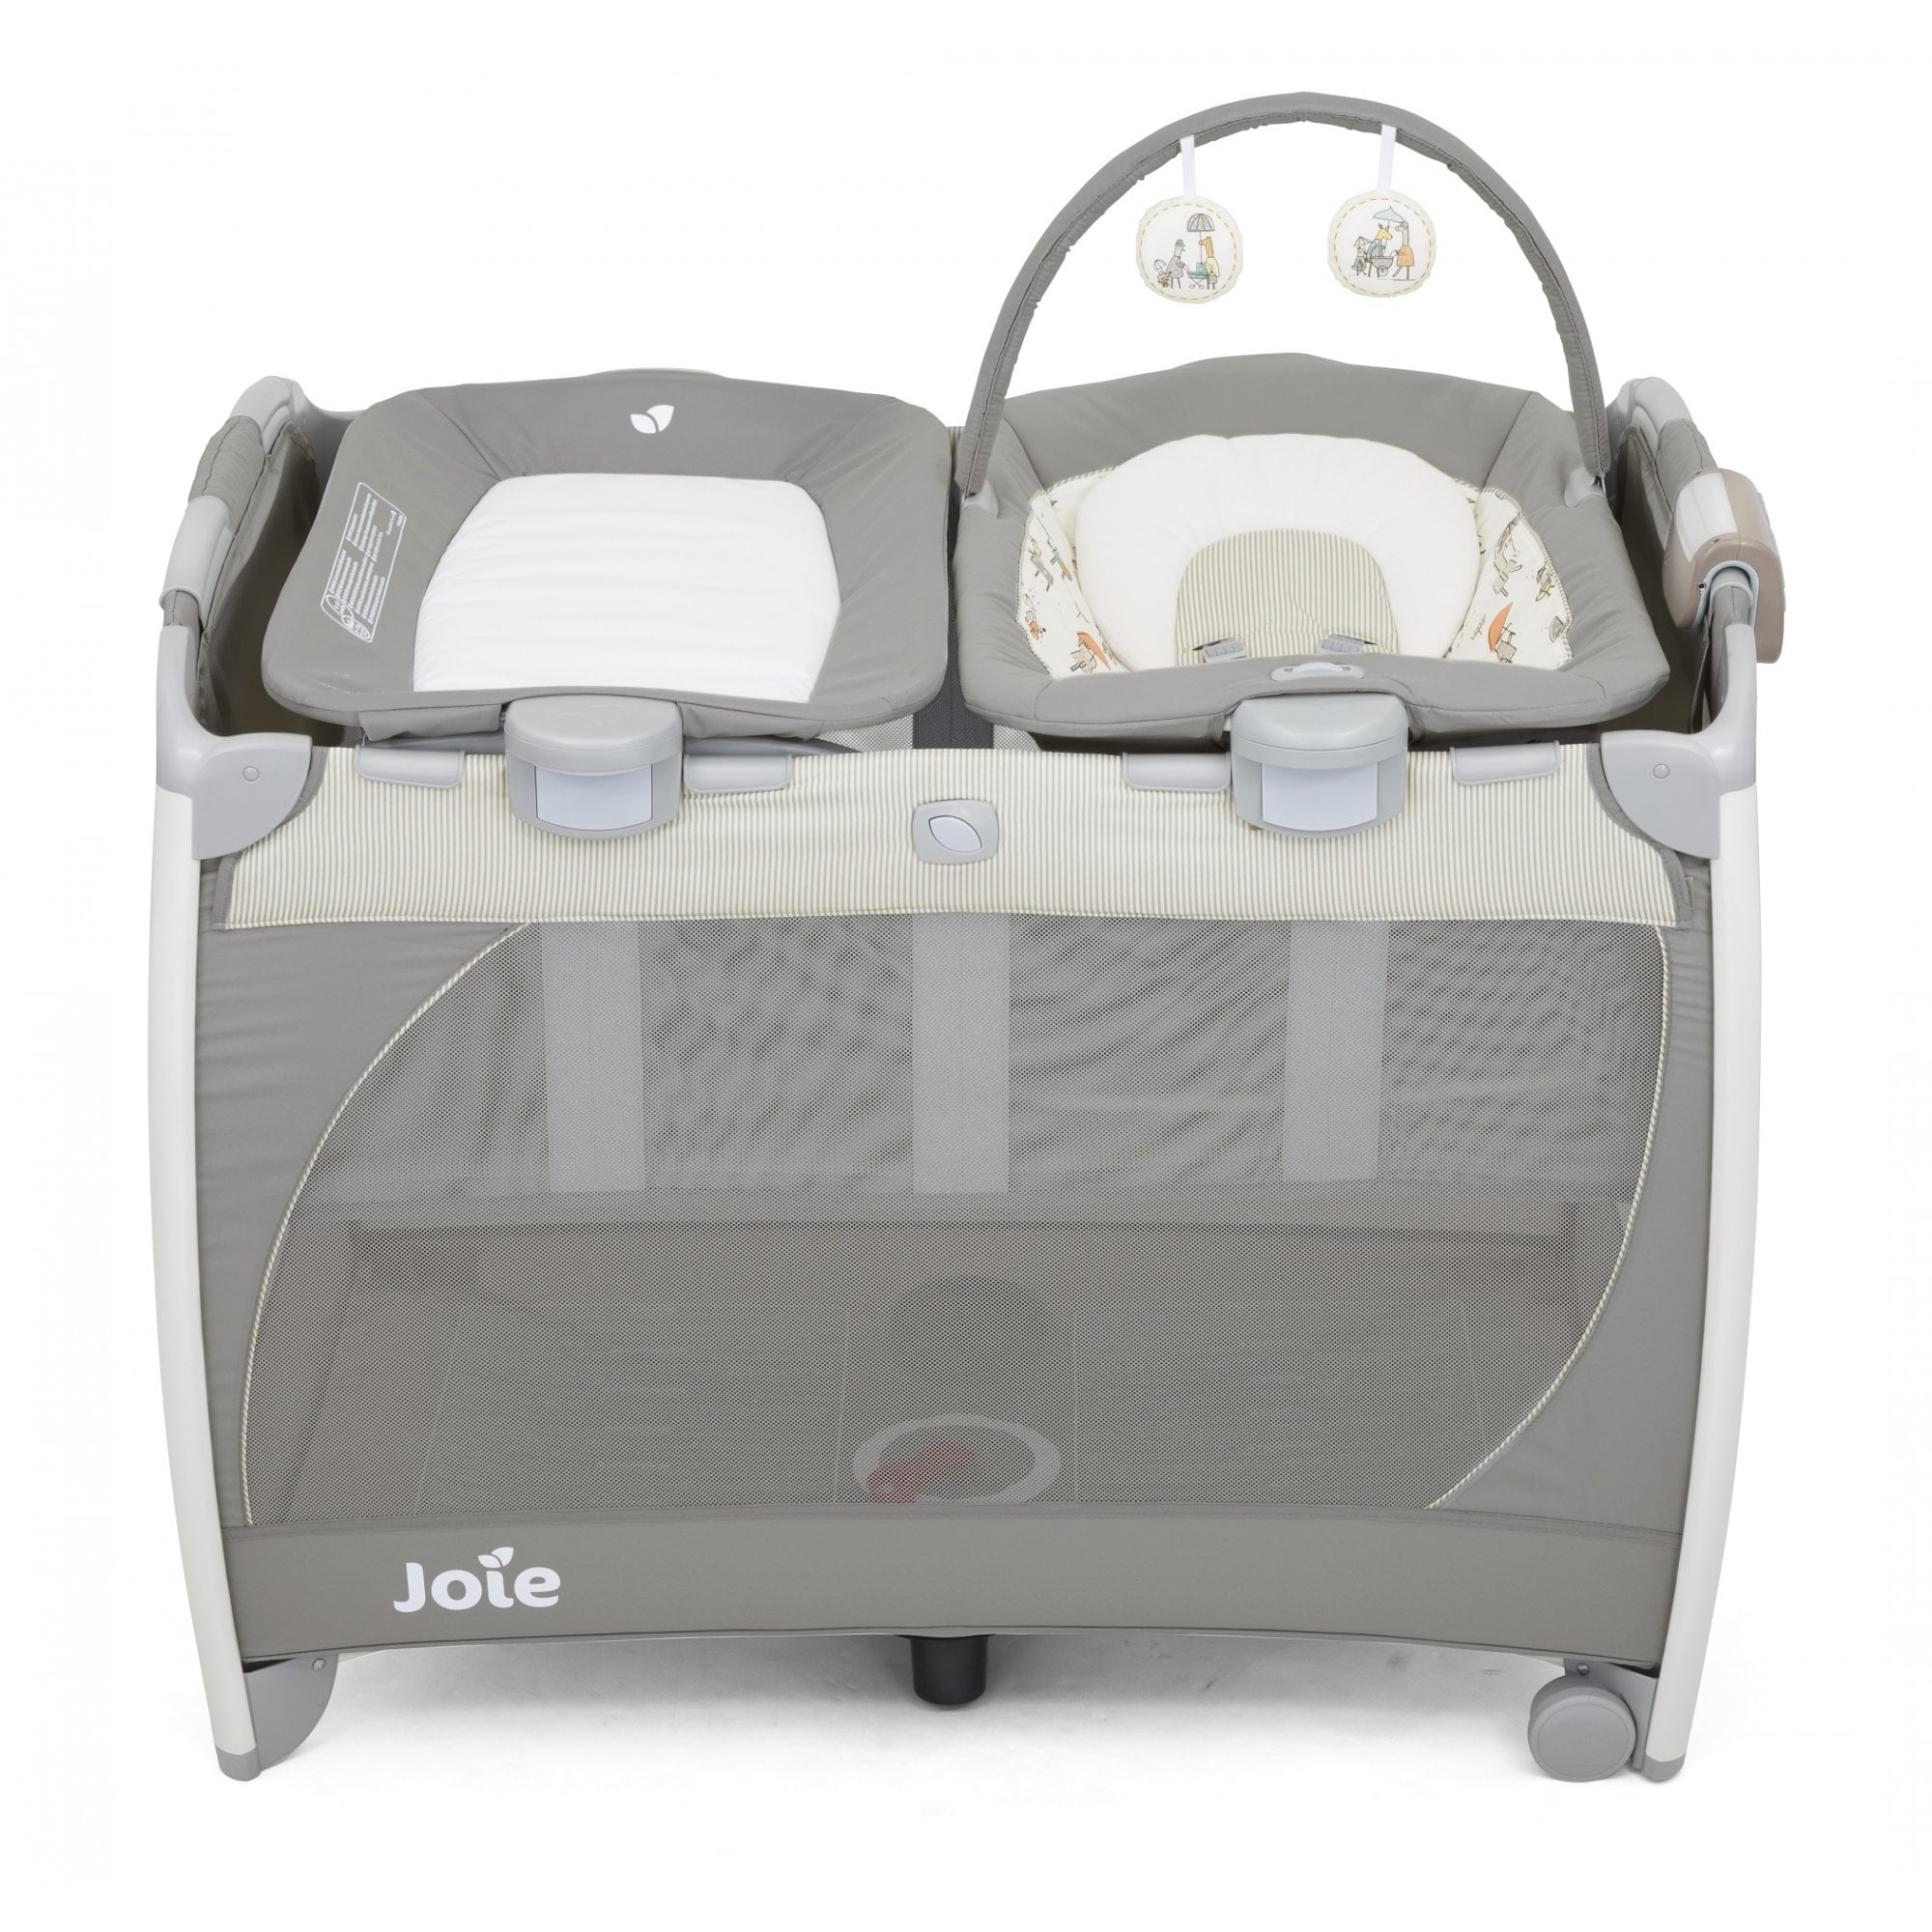 Inovi Cocoon Travel Bassinet Grey Great Used condition RRP £115.00